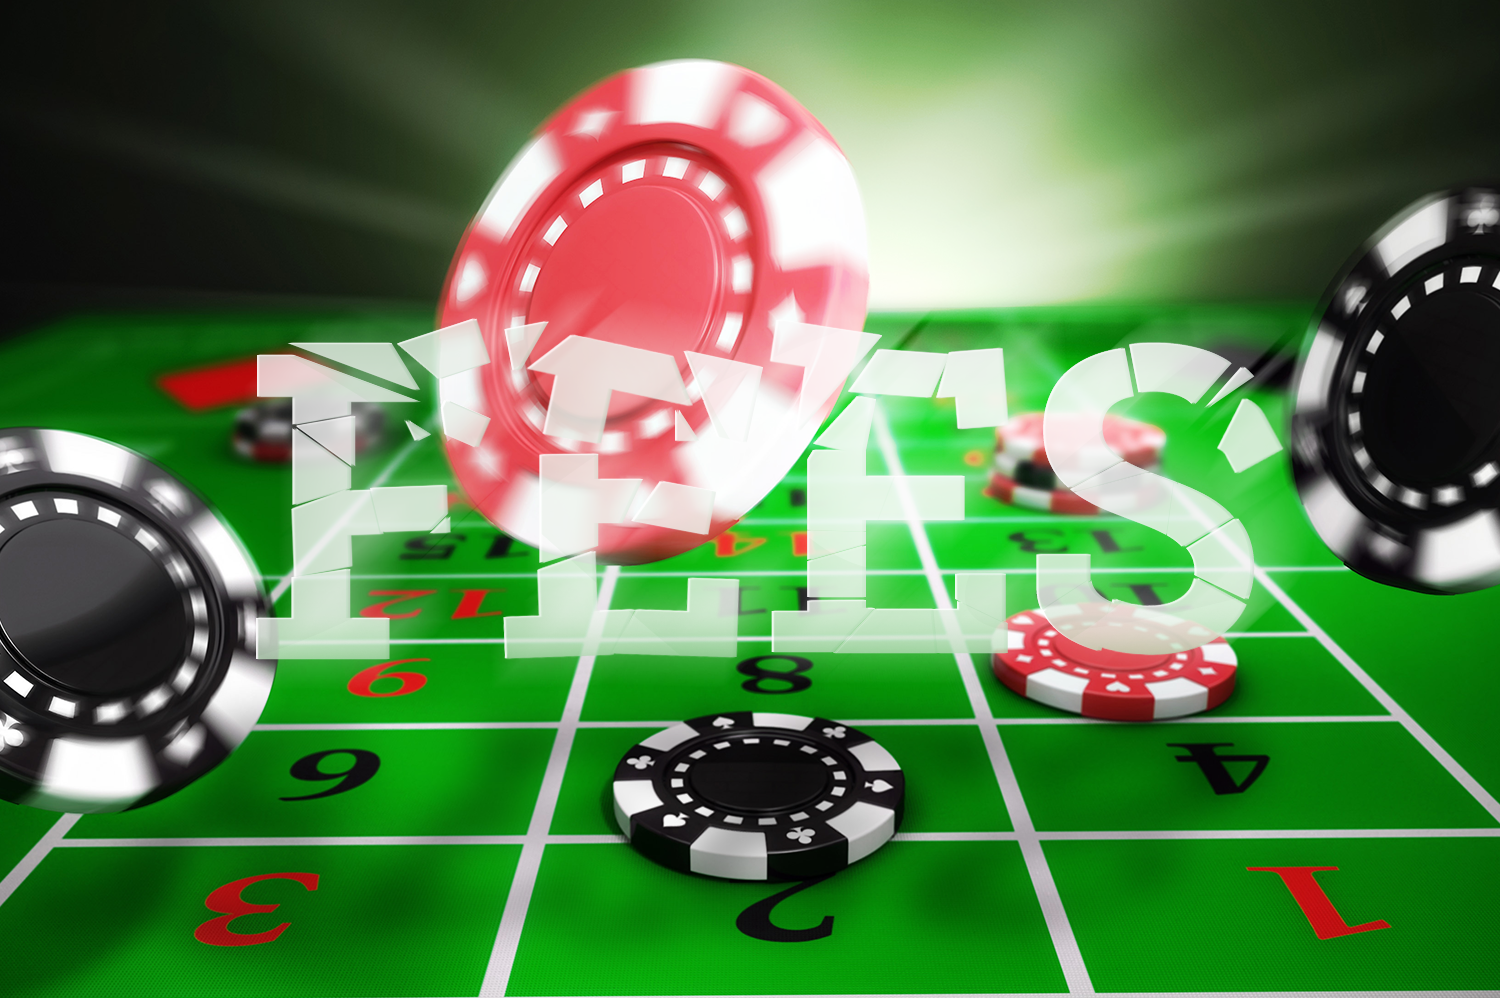 How to win jackpot on brucey b slots